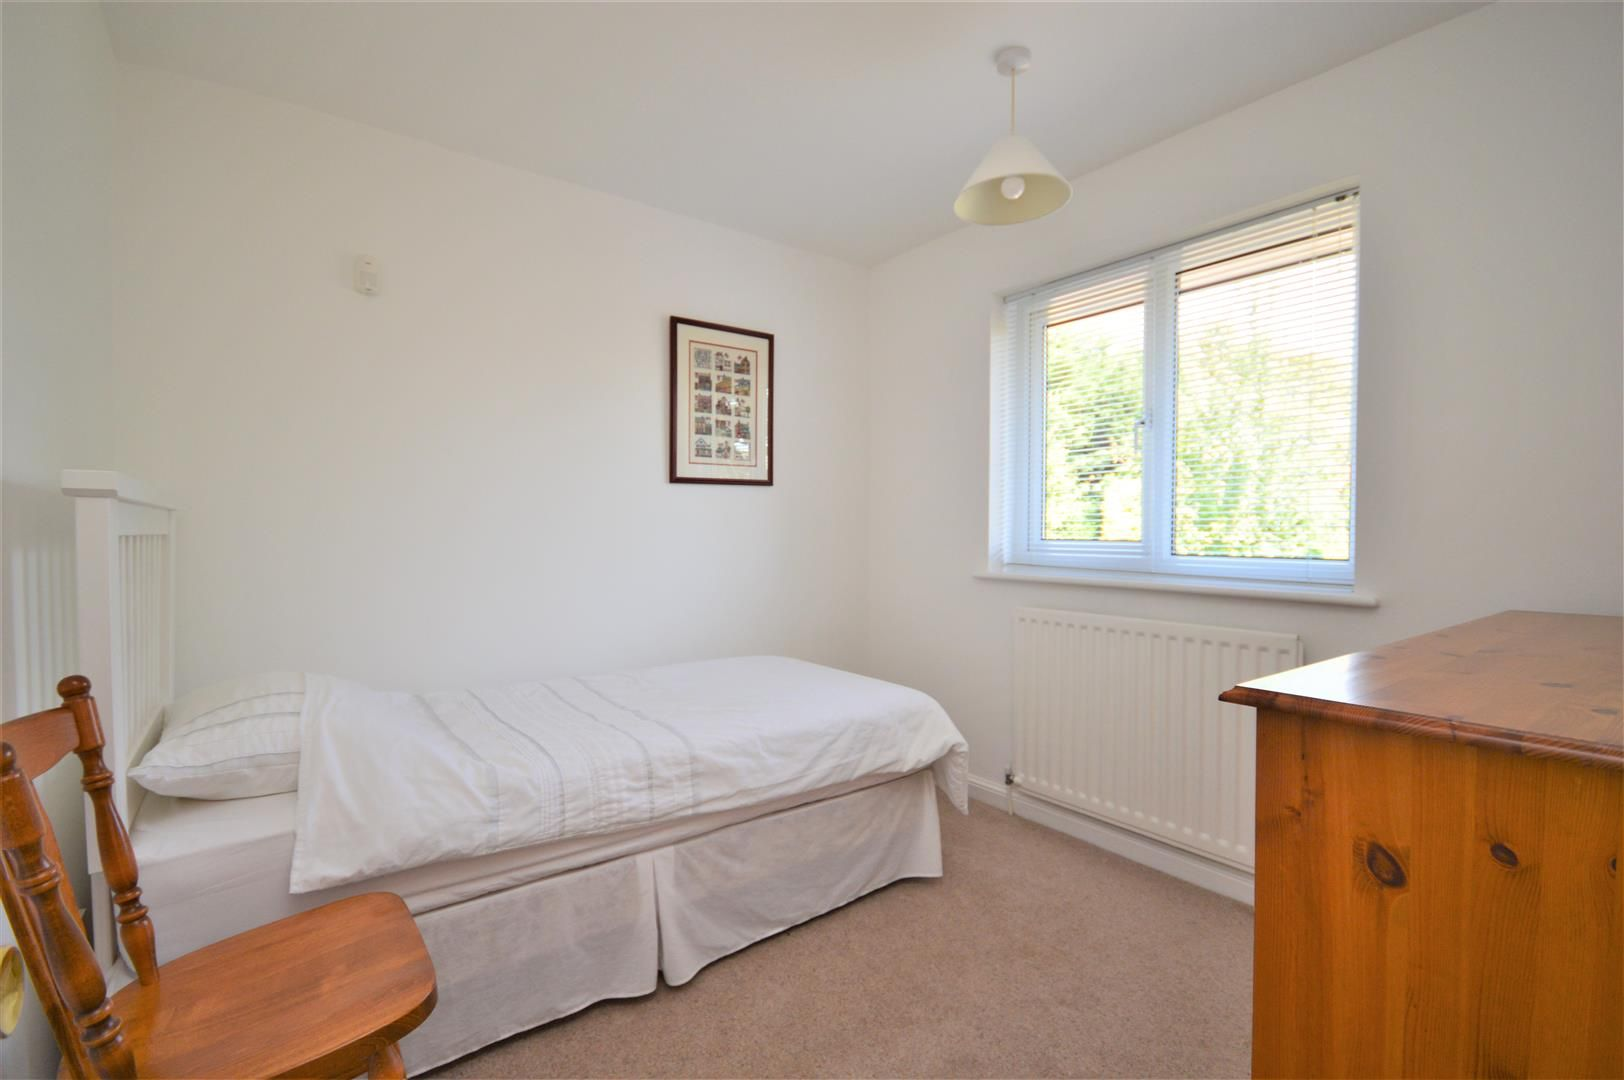 4 bed detached for sale in Hereford  - Property Image 15